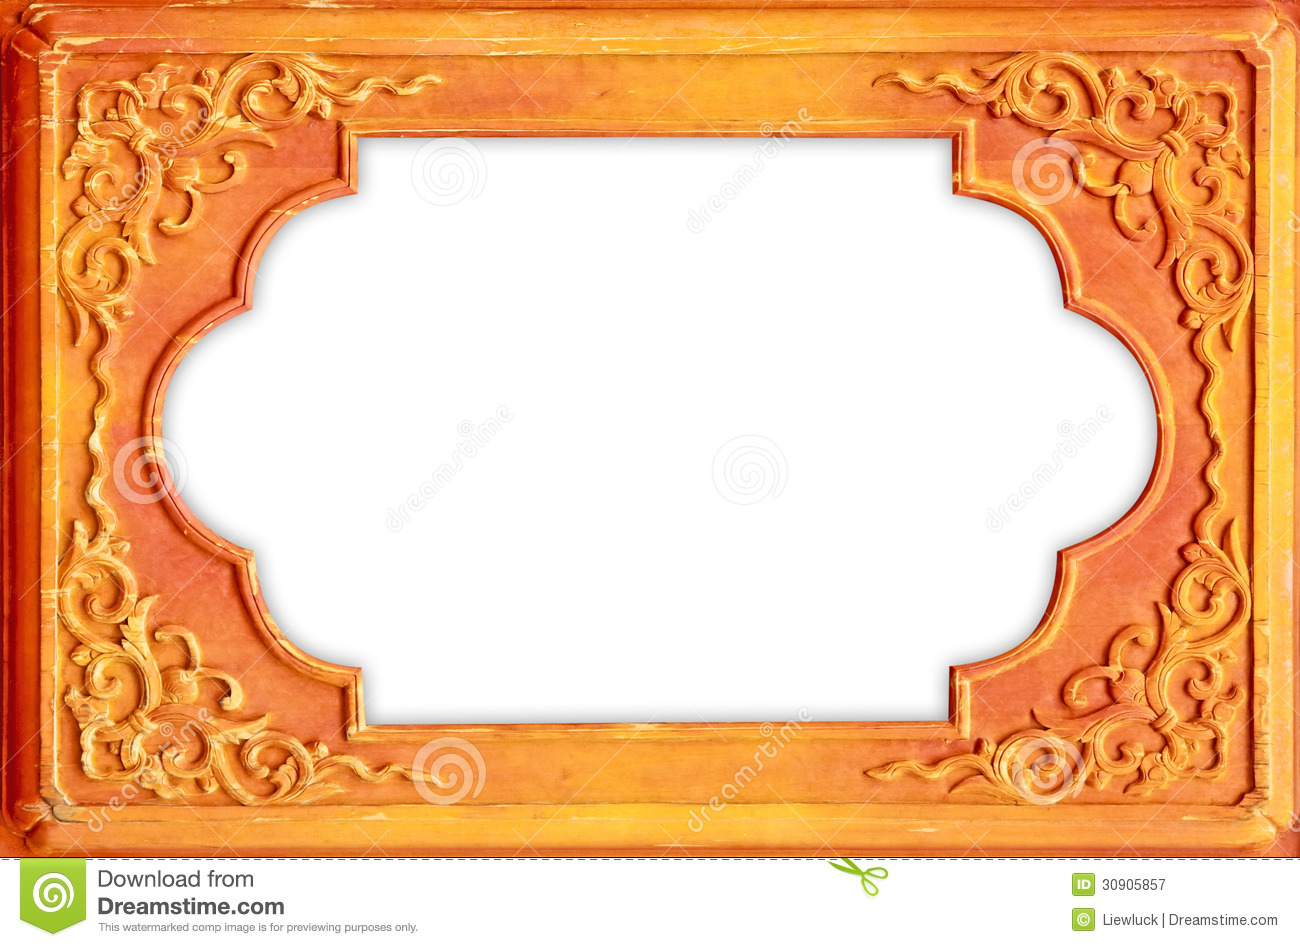 Wooden Frame Design : Design On The Wooden Frame Royalty Free Stock Photography - Image ...